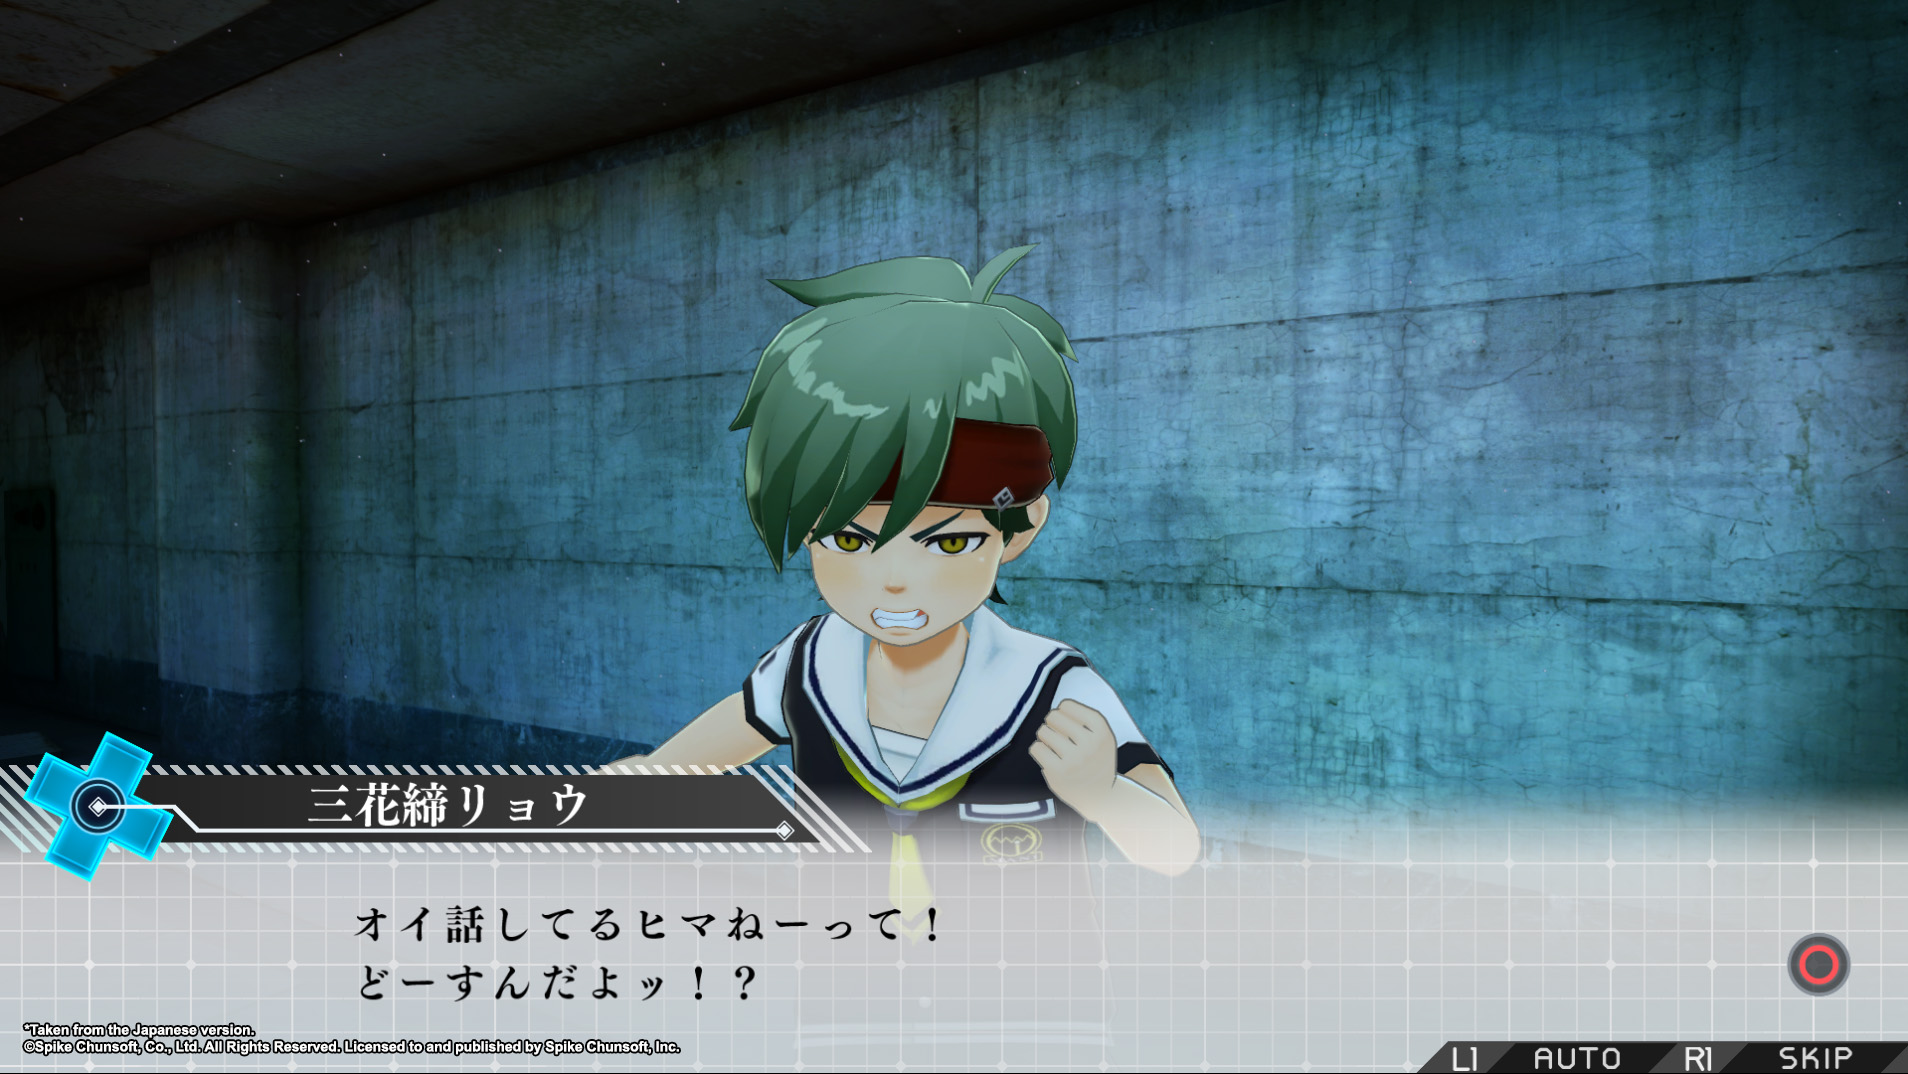 Danganronpa creators' next game, Zanki Zero, coming to the